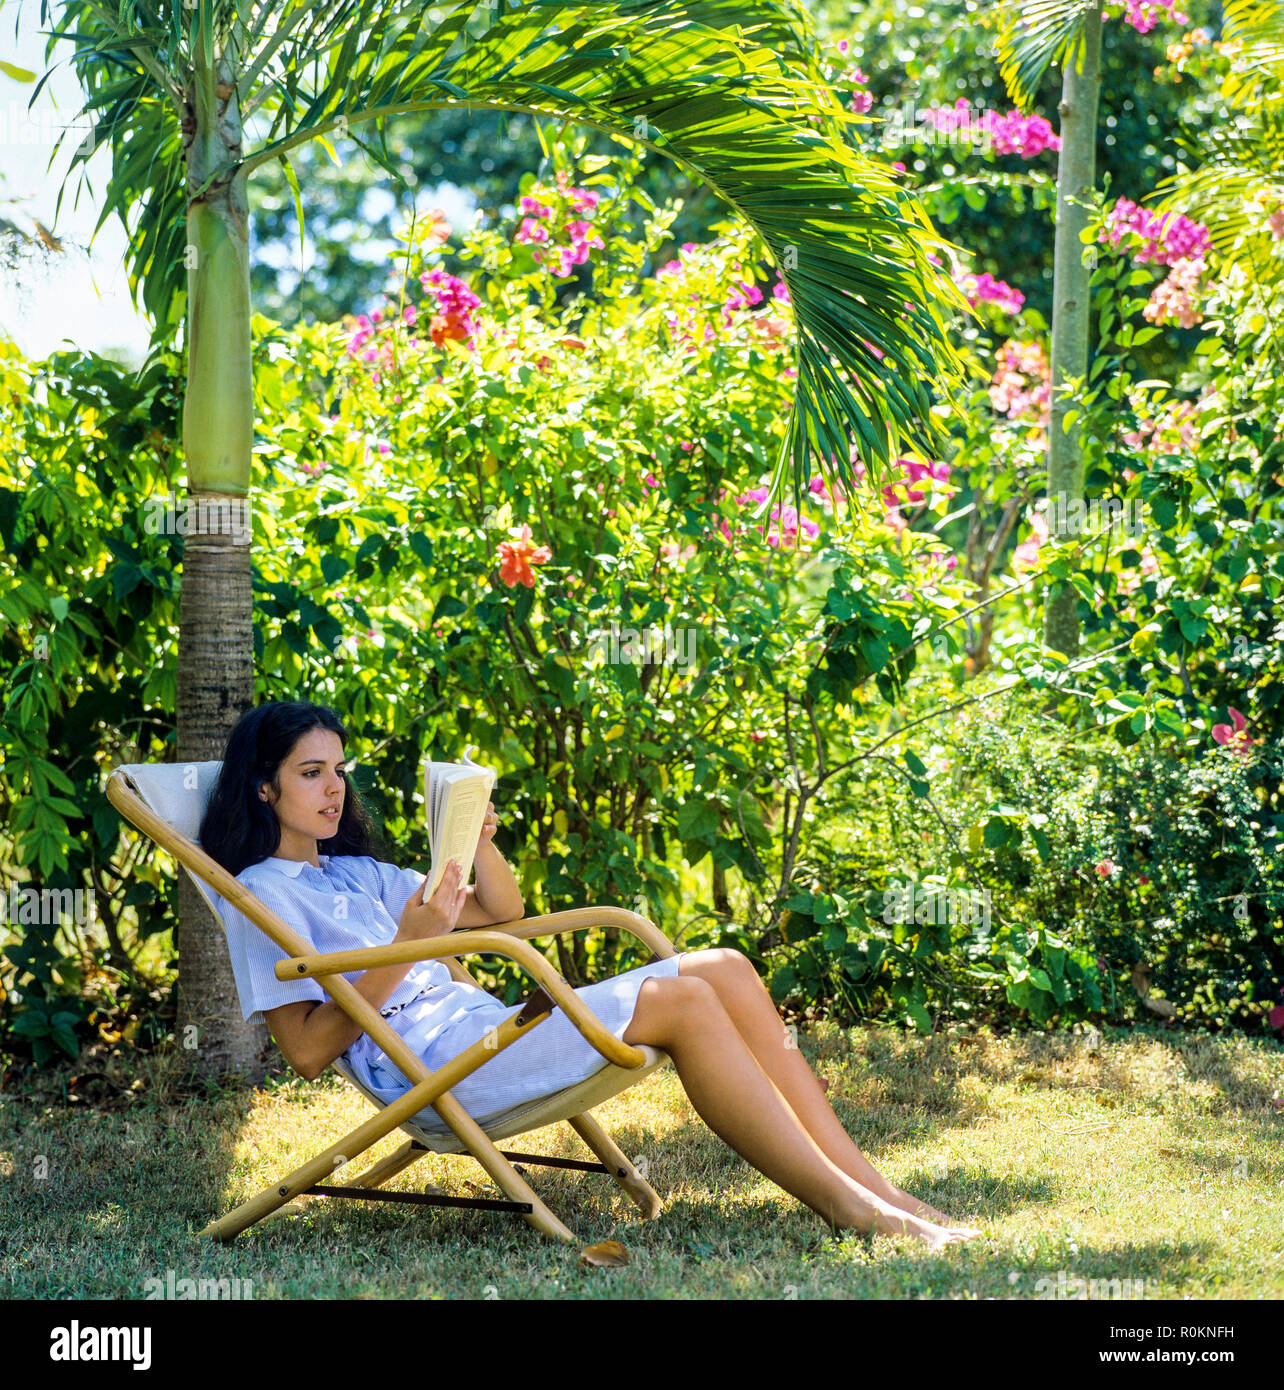 Young woman sitting in deck chair and reading a book, tropical garden, Guadeloupe, French West Indies, - Stock Image